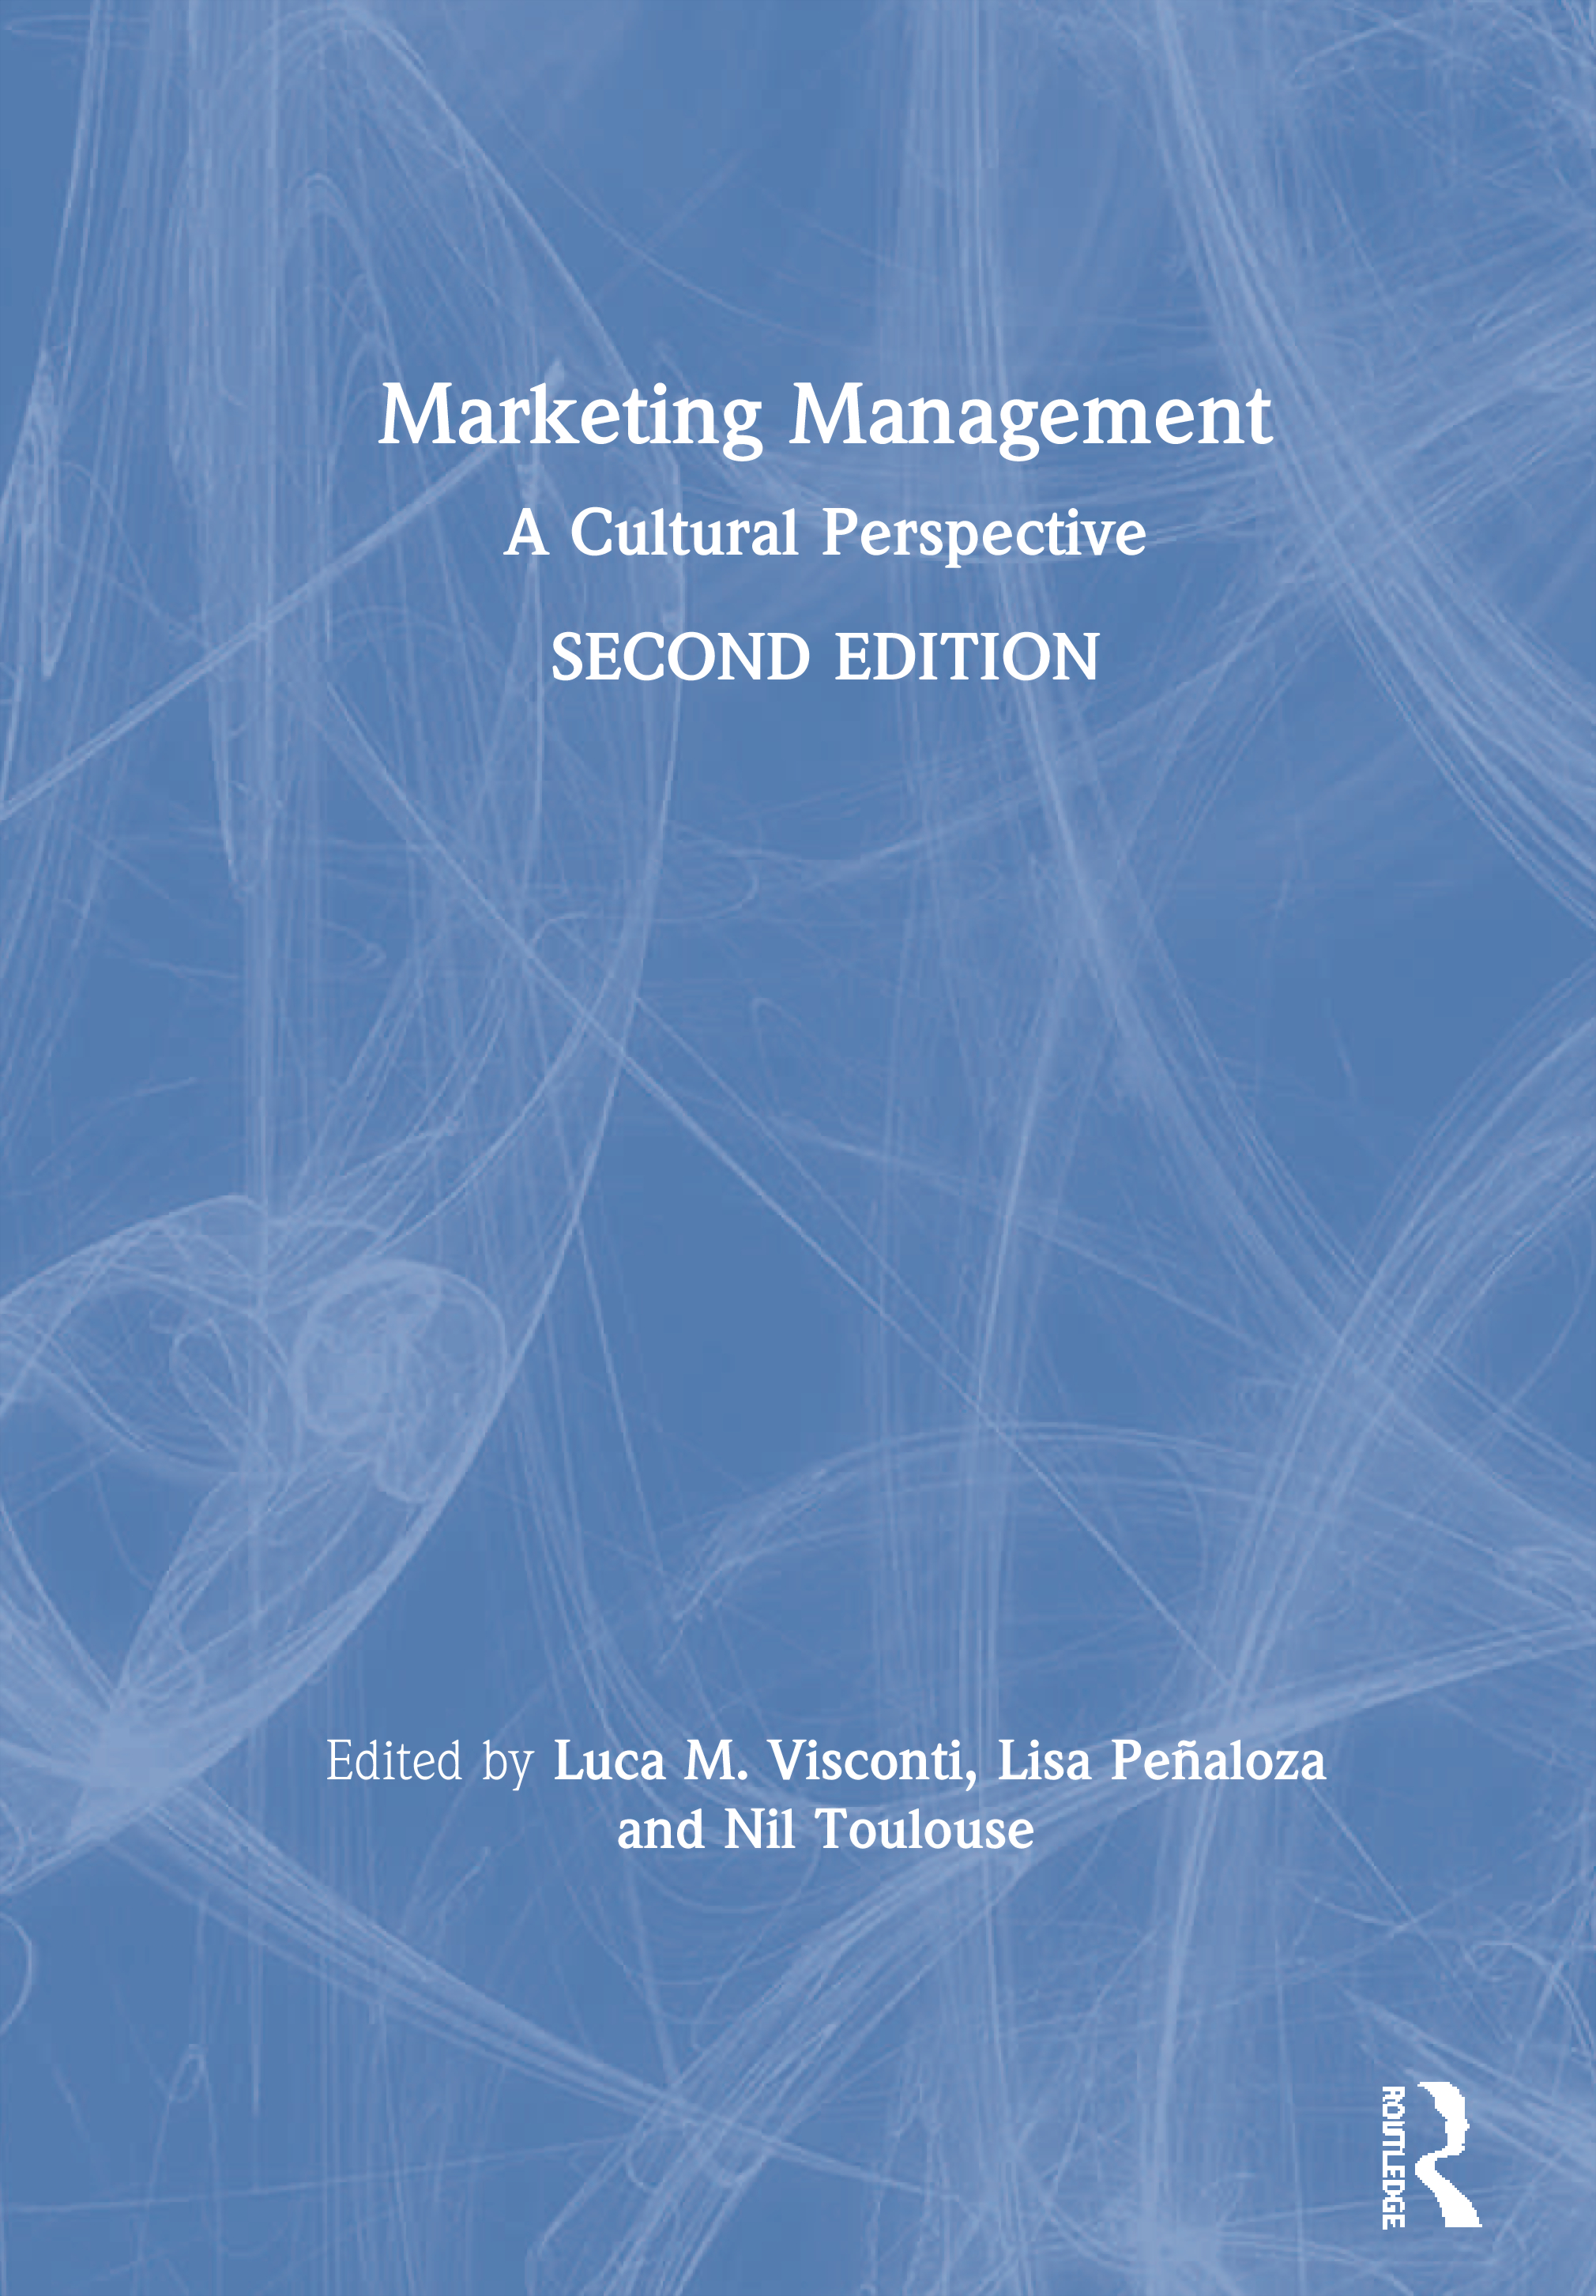 Marketing Management: A Cultural Perspective book cover